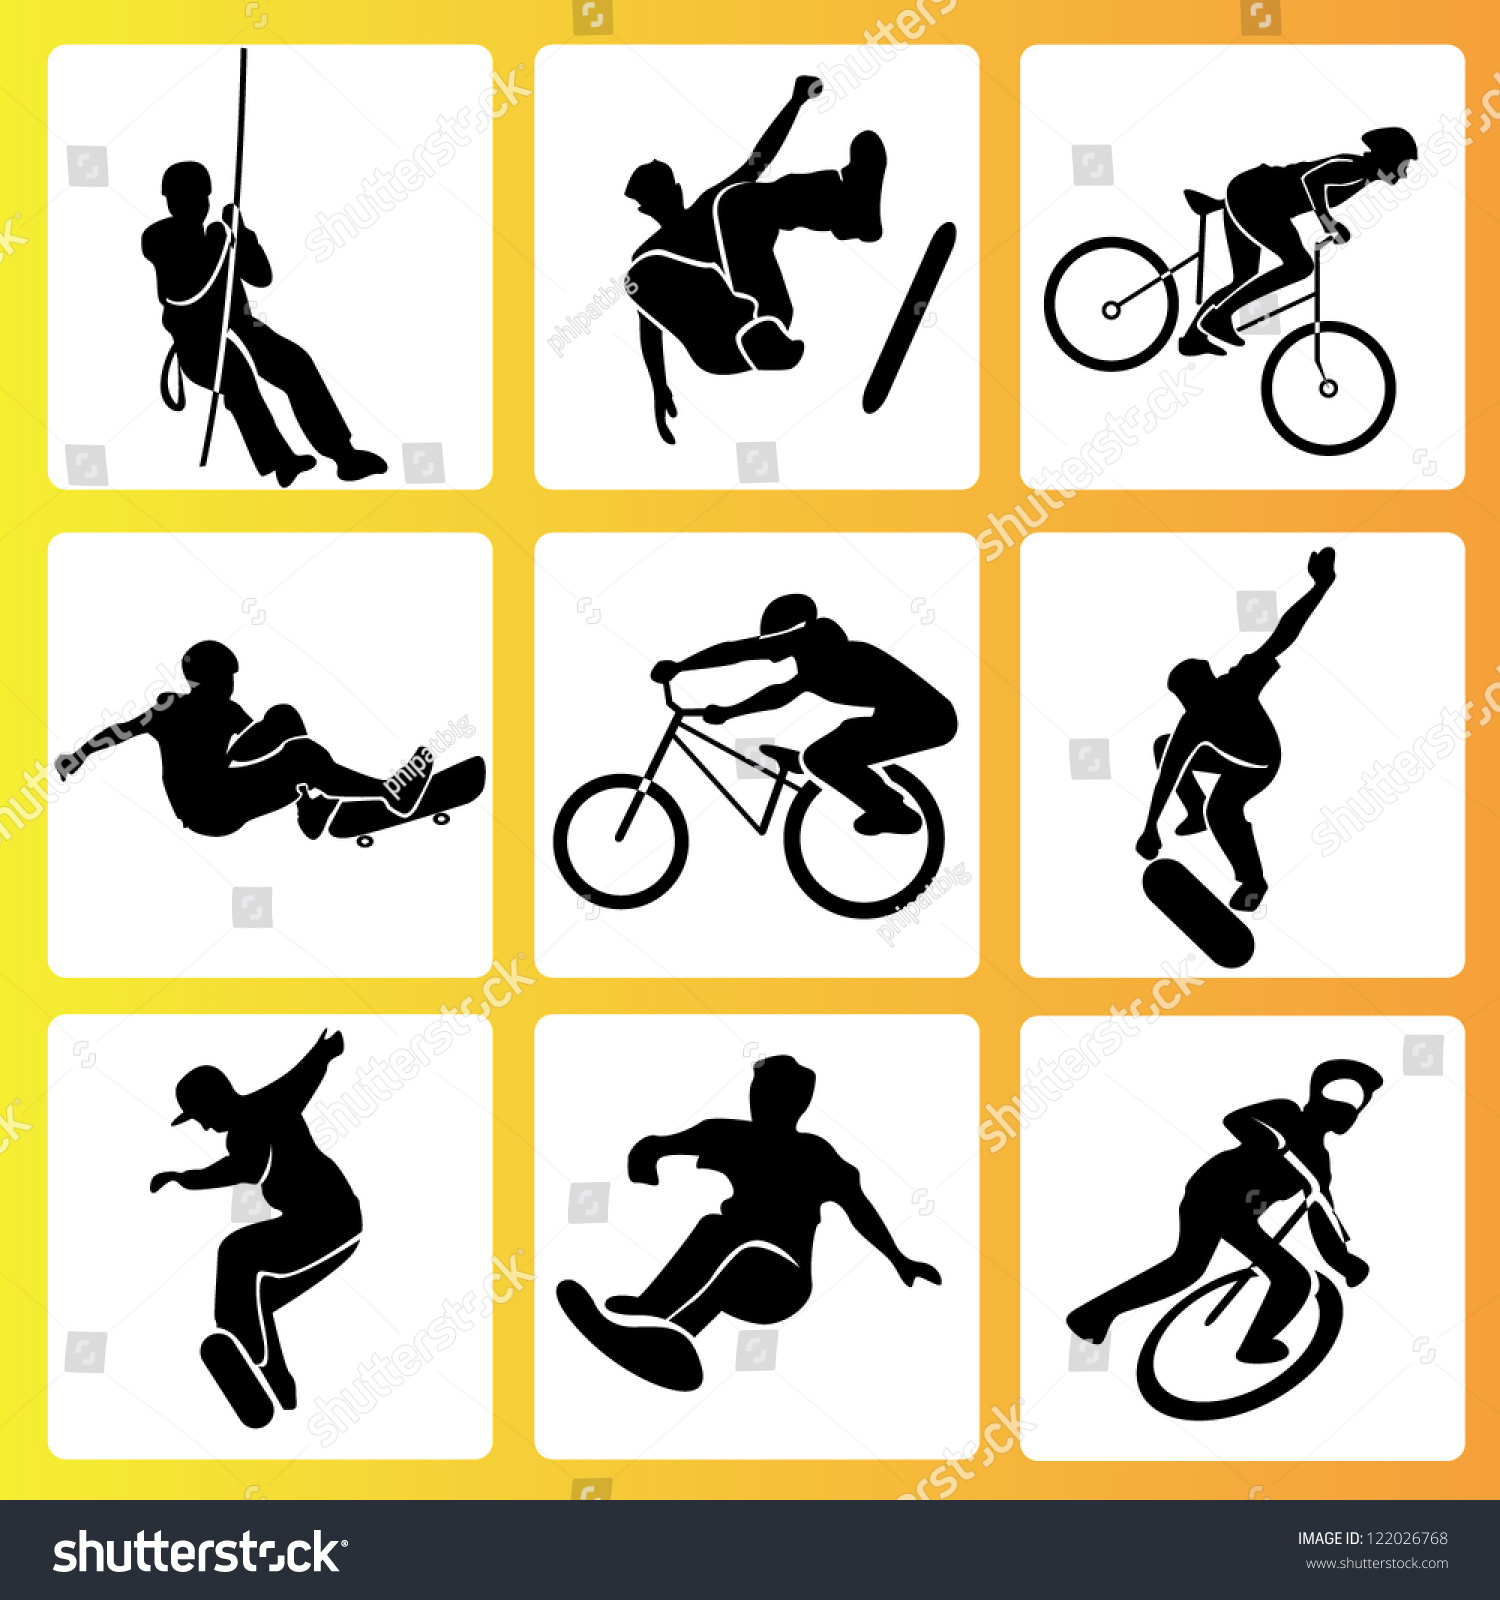 extreme sport summer activities icon set stock vector 122026768 shutterstock. Black Bedroom Furniture Sets. Home Design Ideas